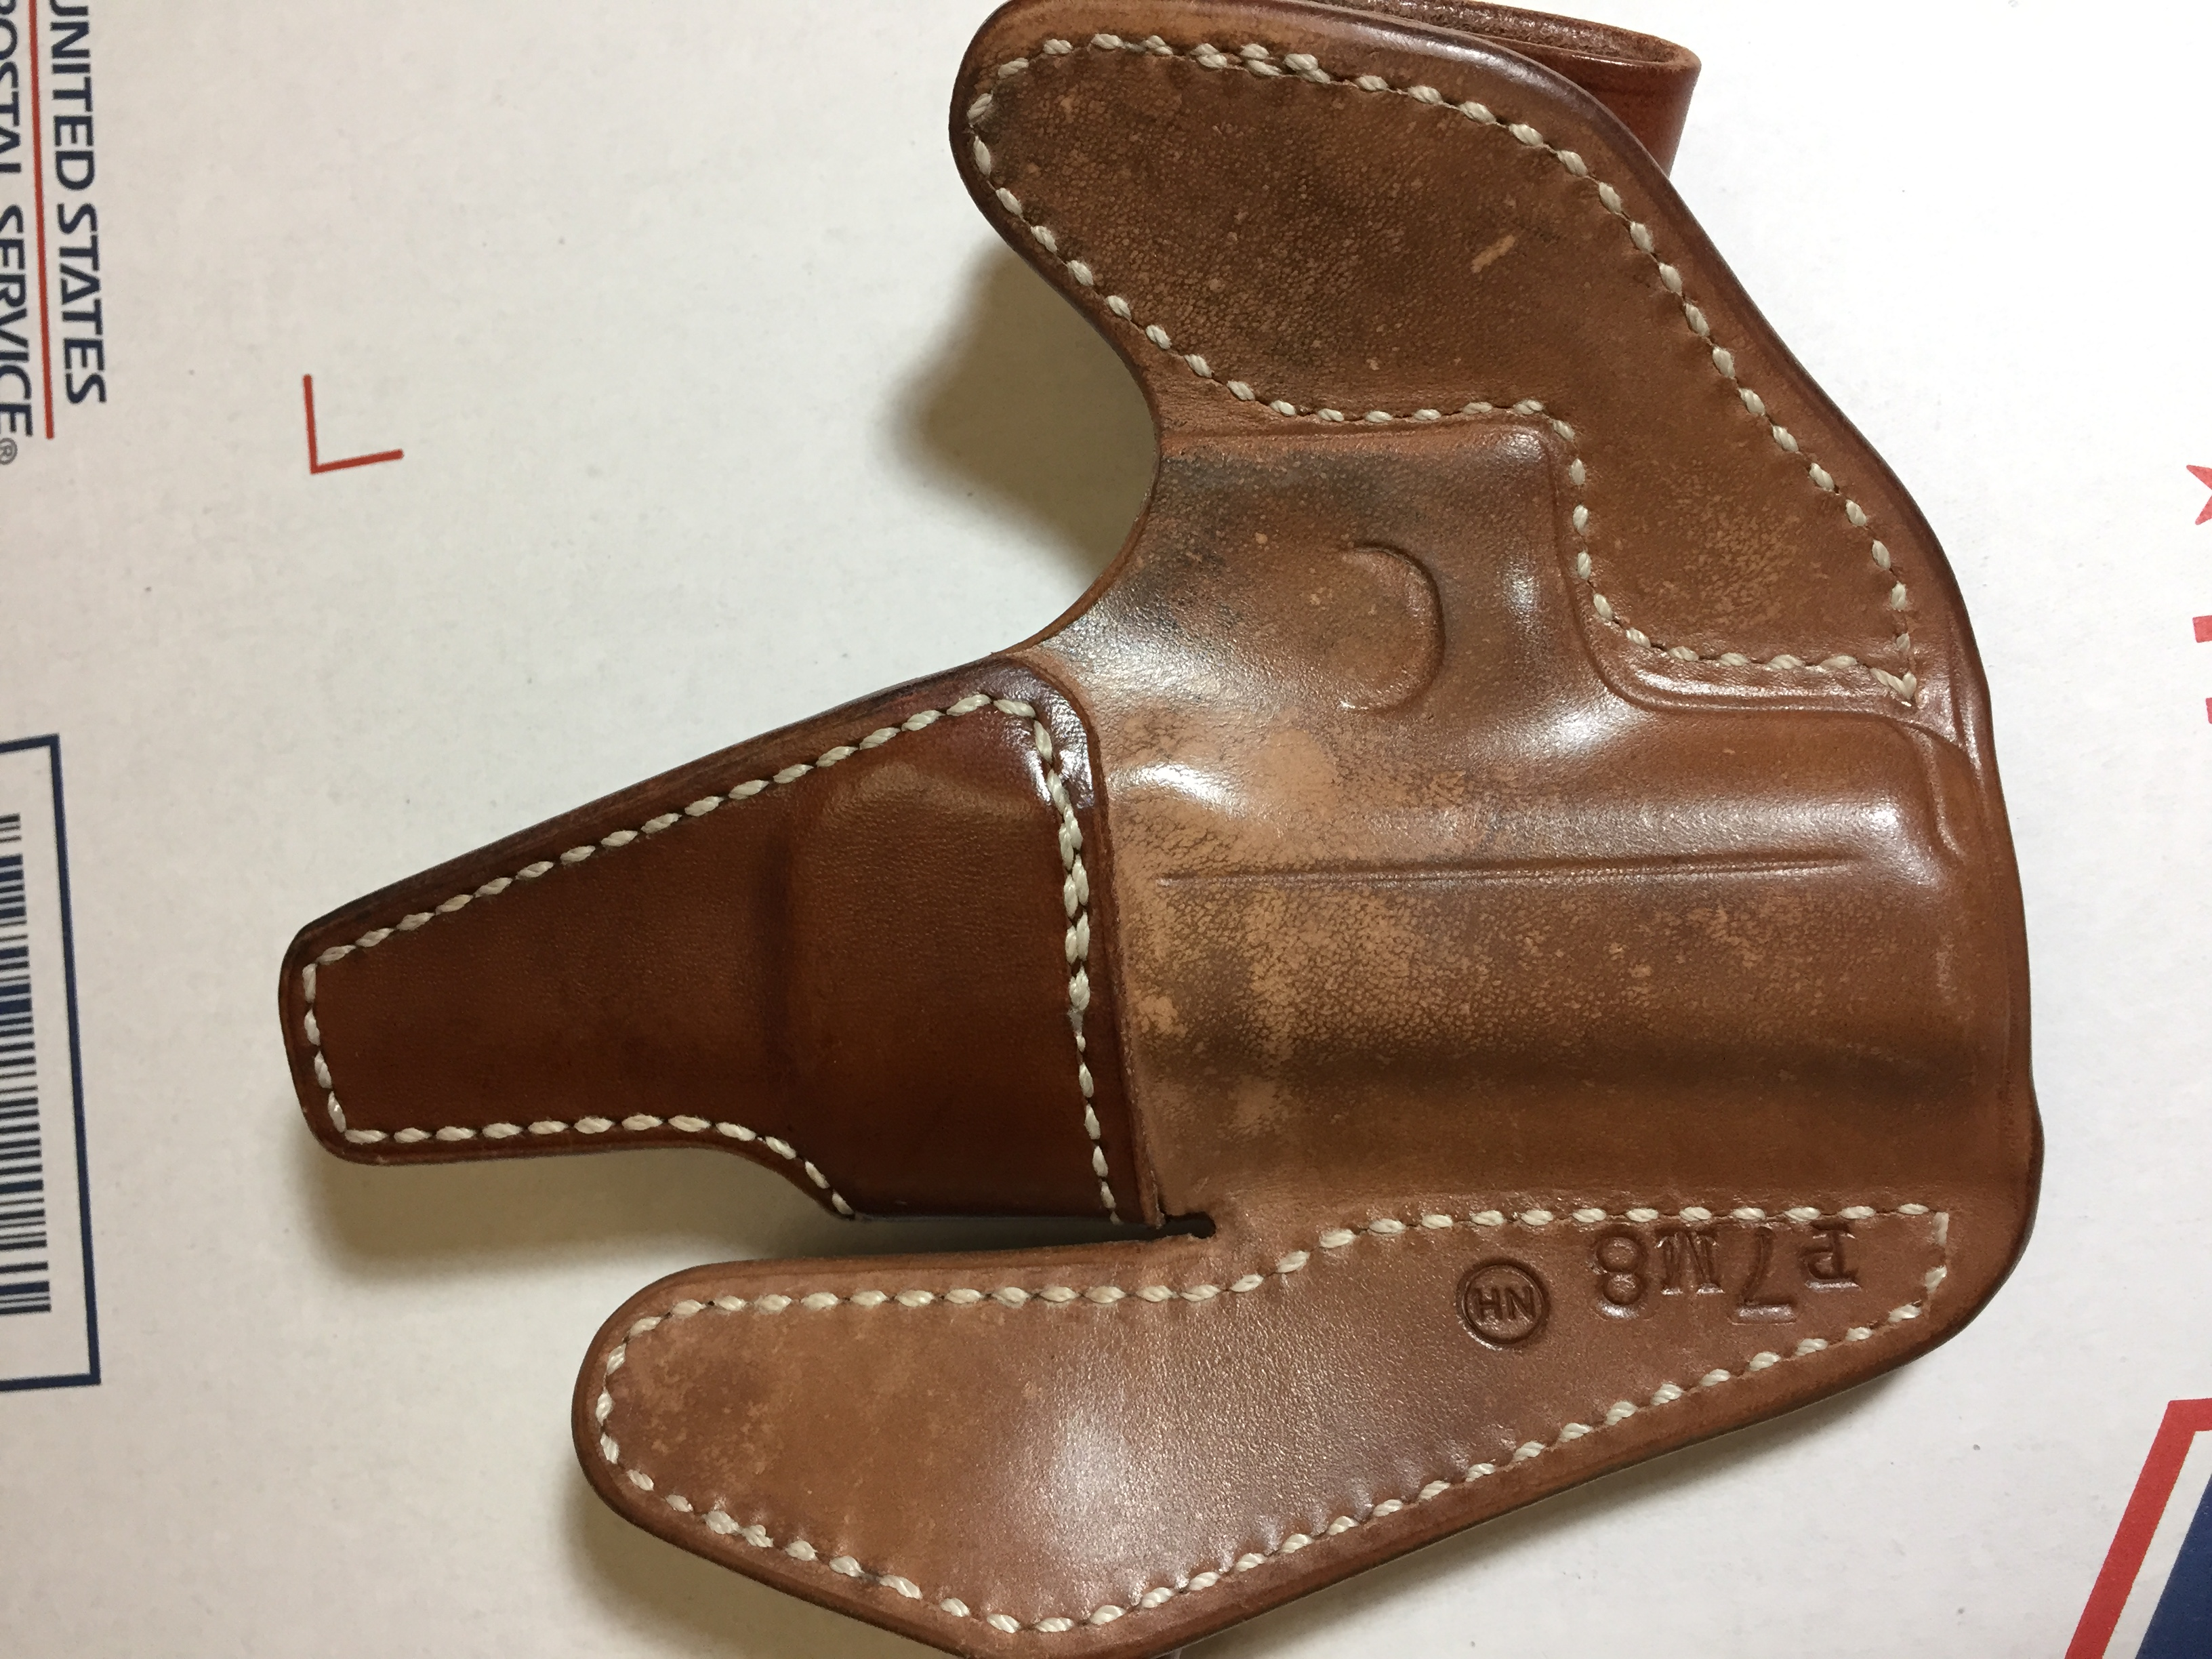 WTS: Several Milt Sparks holsters and a belt-img_0370.jpg